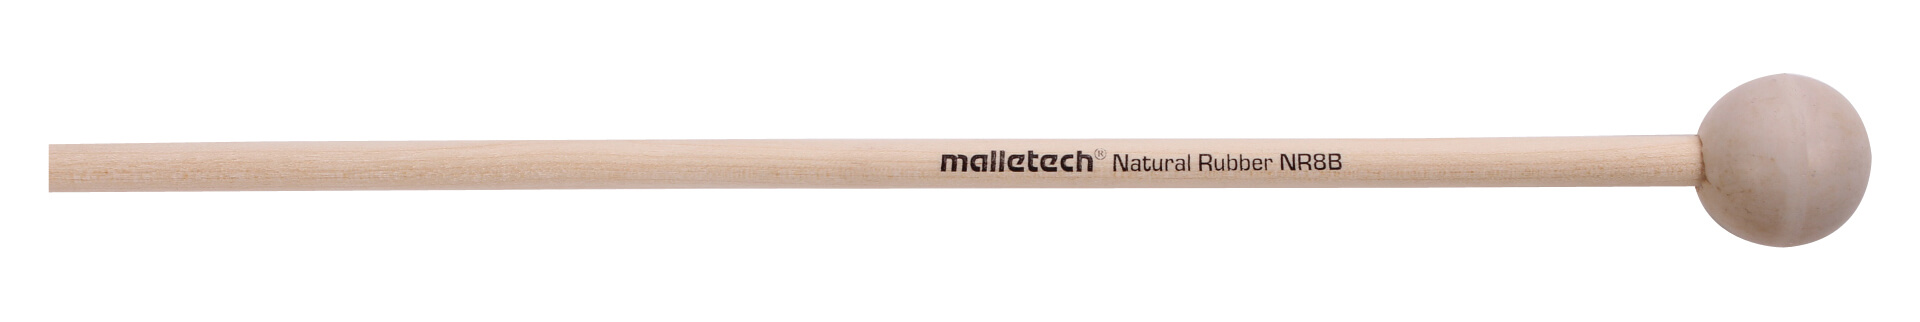 Malletech NR8R Natural Rubber Series